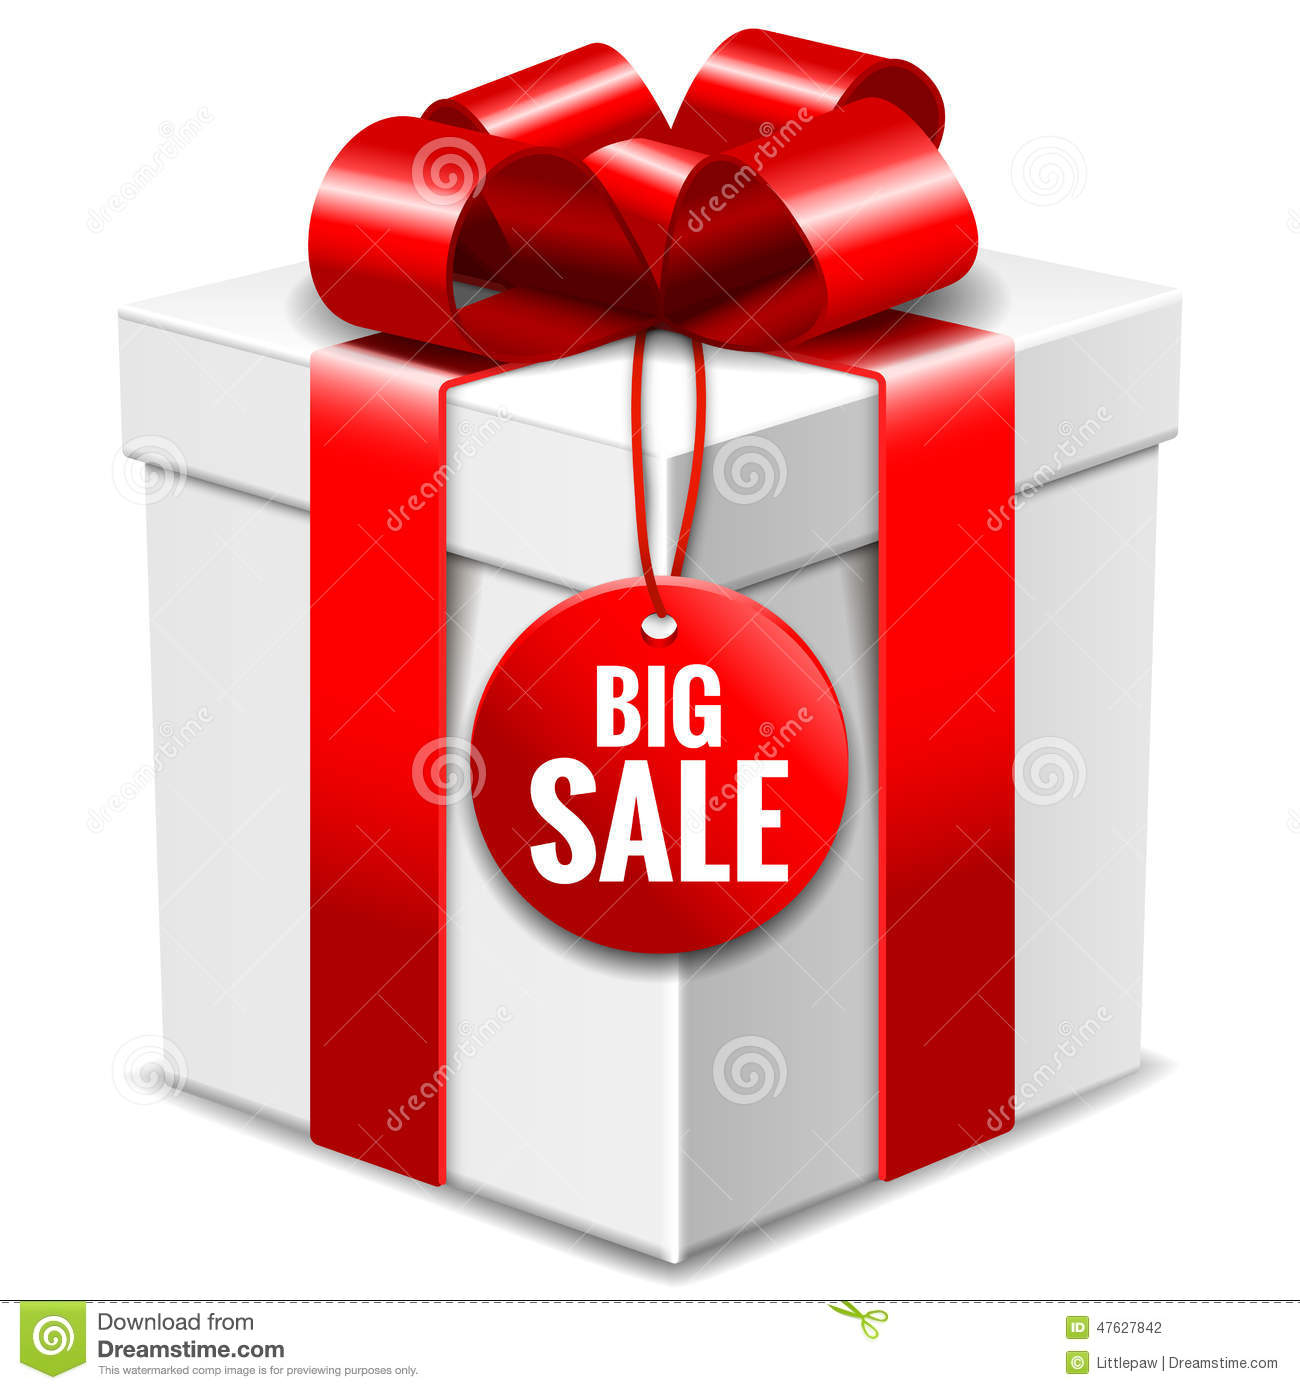 big white gift box with red bow and big sale tag isolated. Black Bedroom Furniture Sets. Home Design Ideas